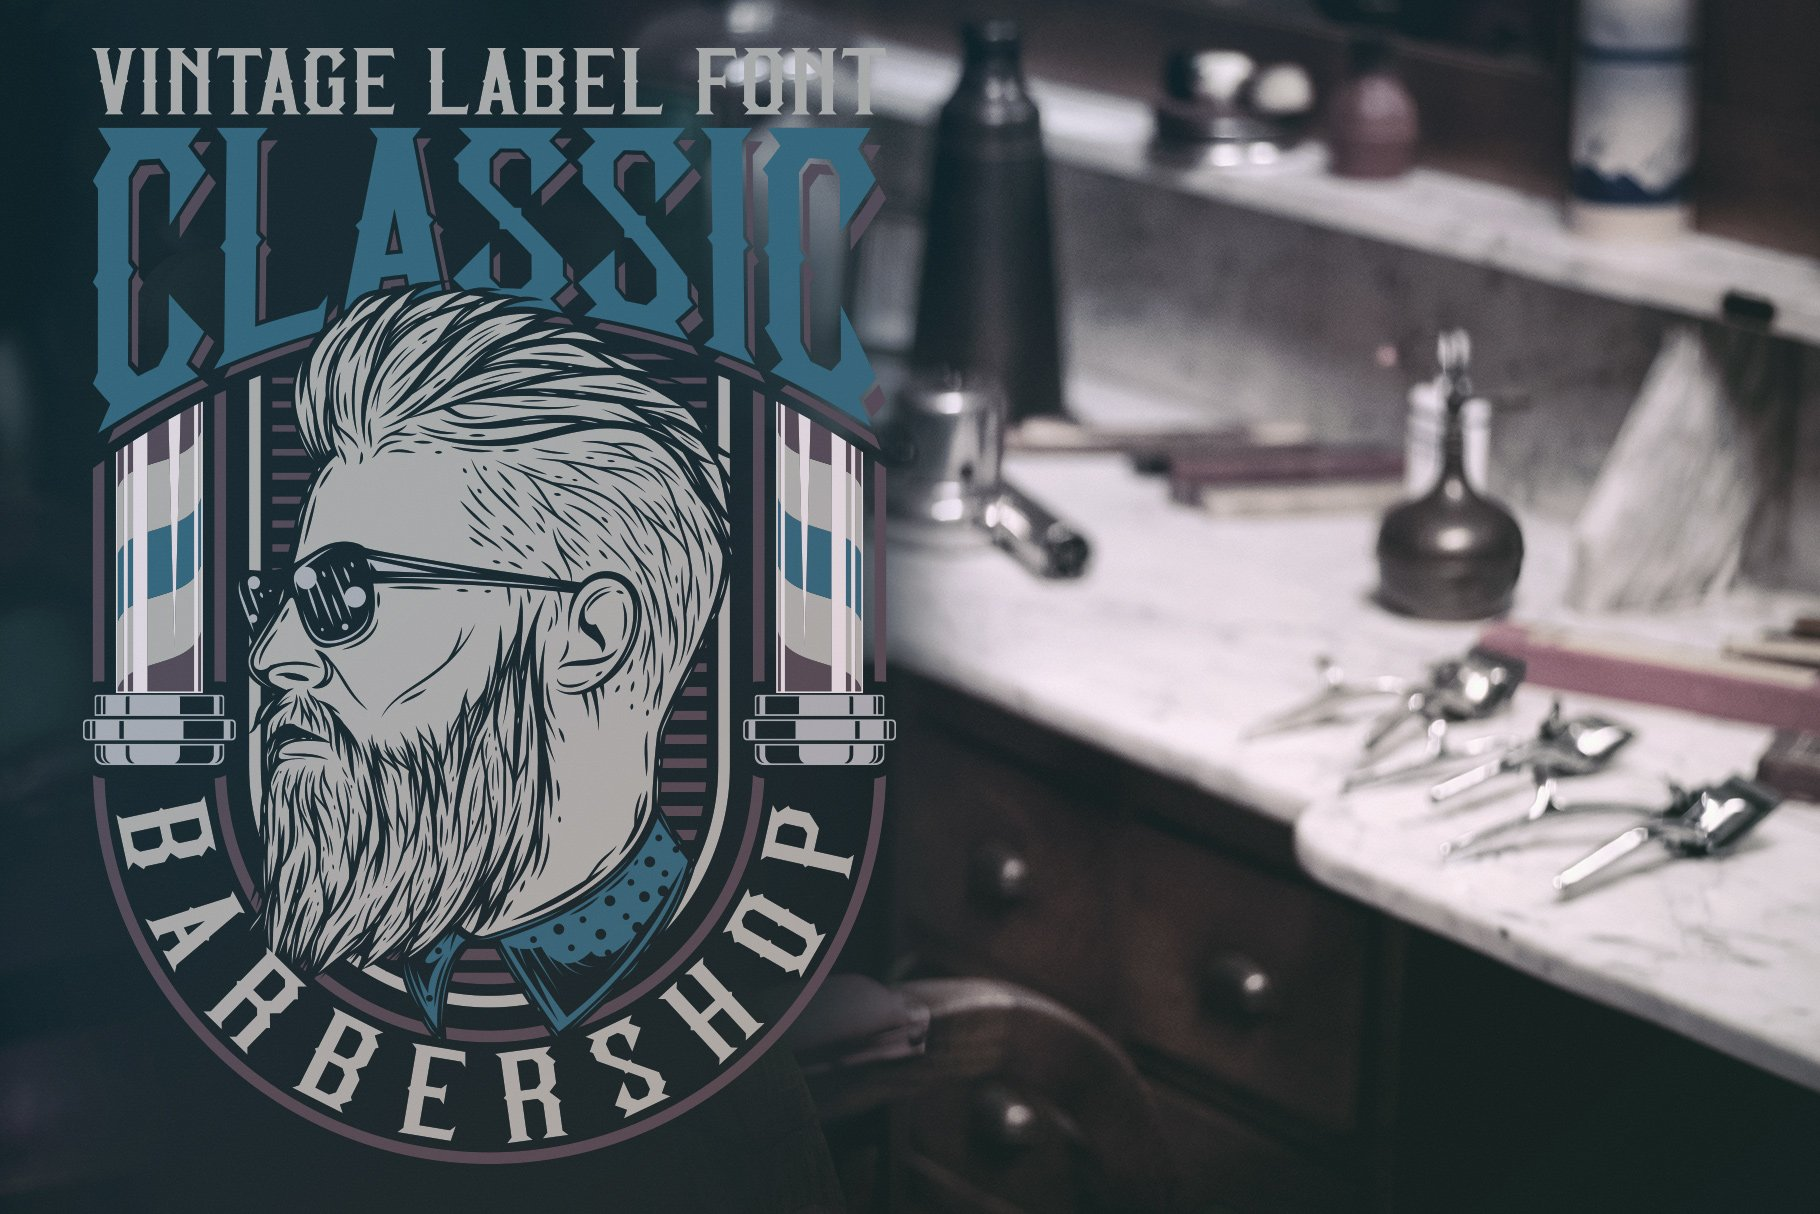 Cool emblem for a barbershop with a man with a good haircut.